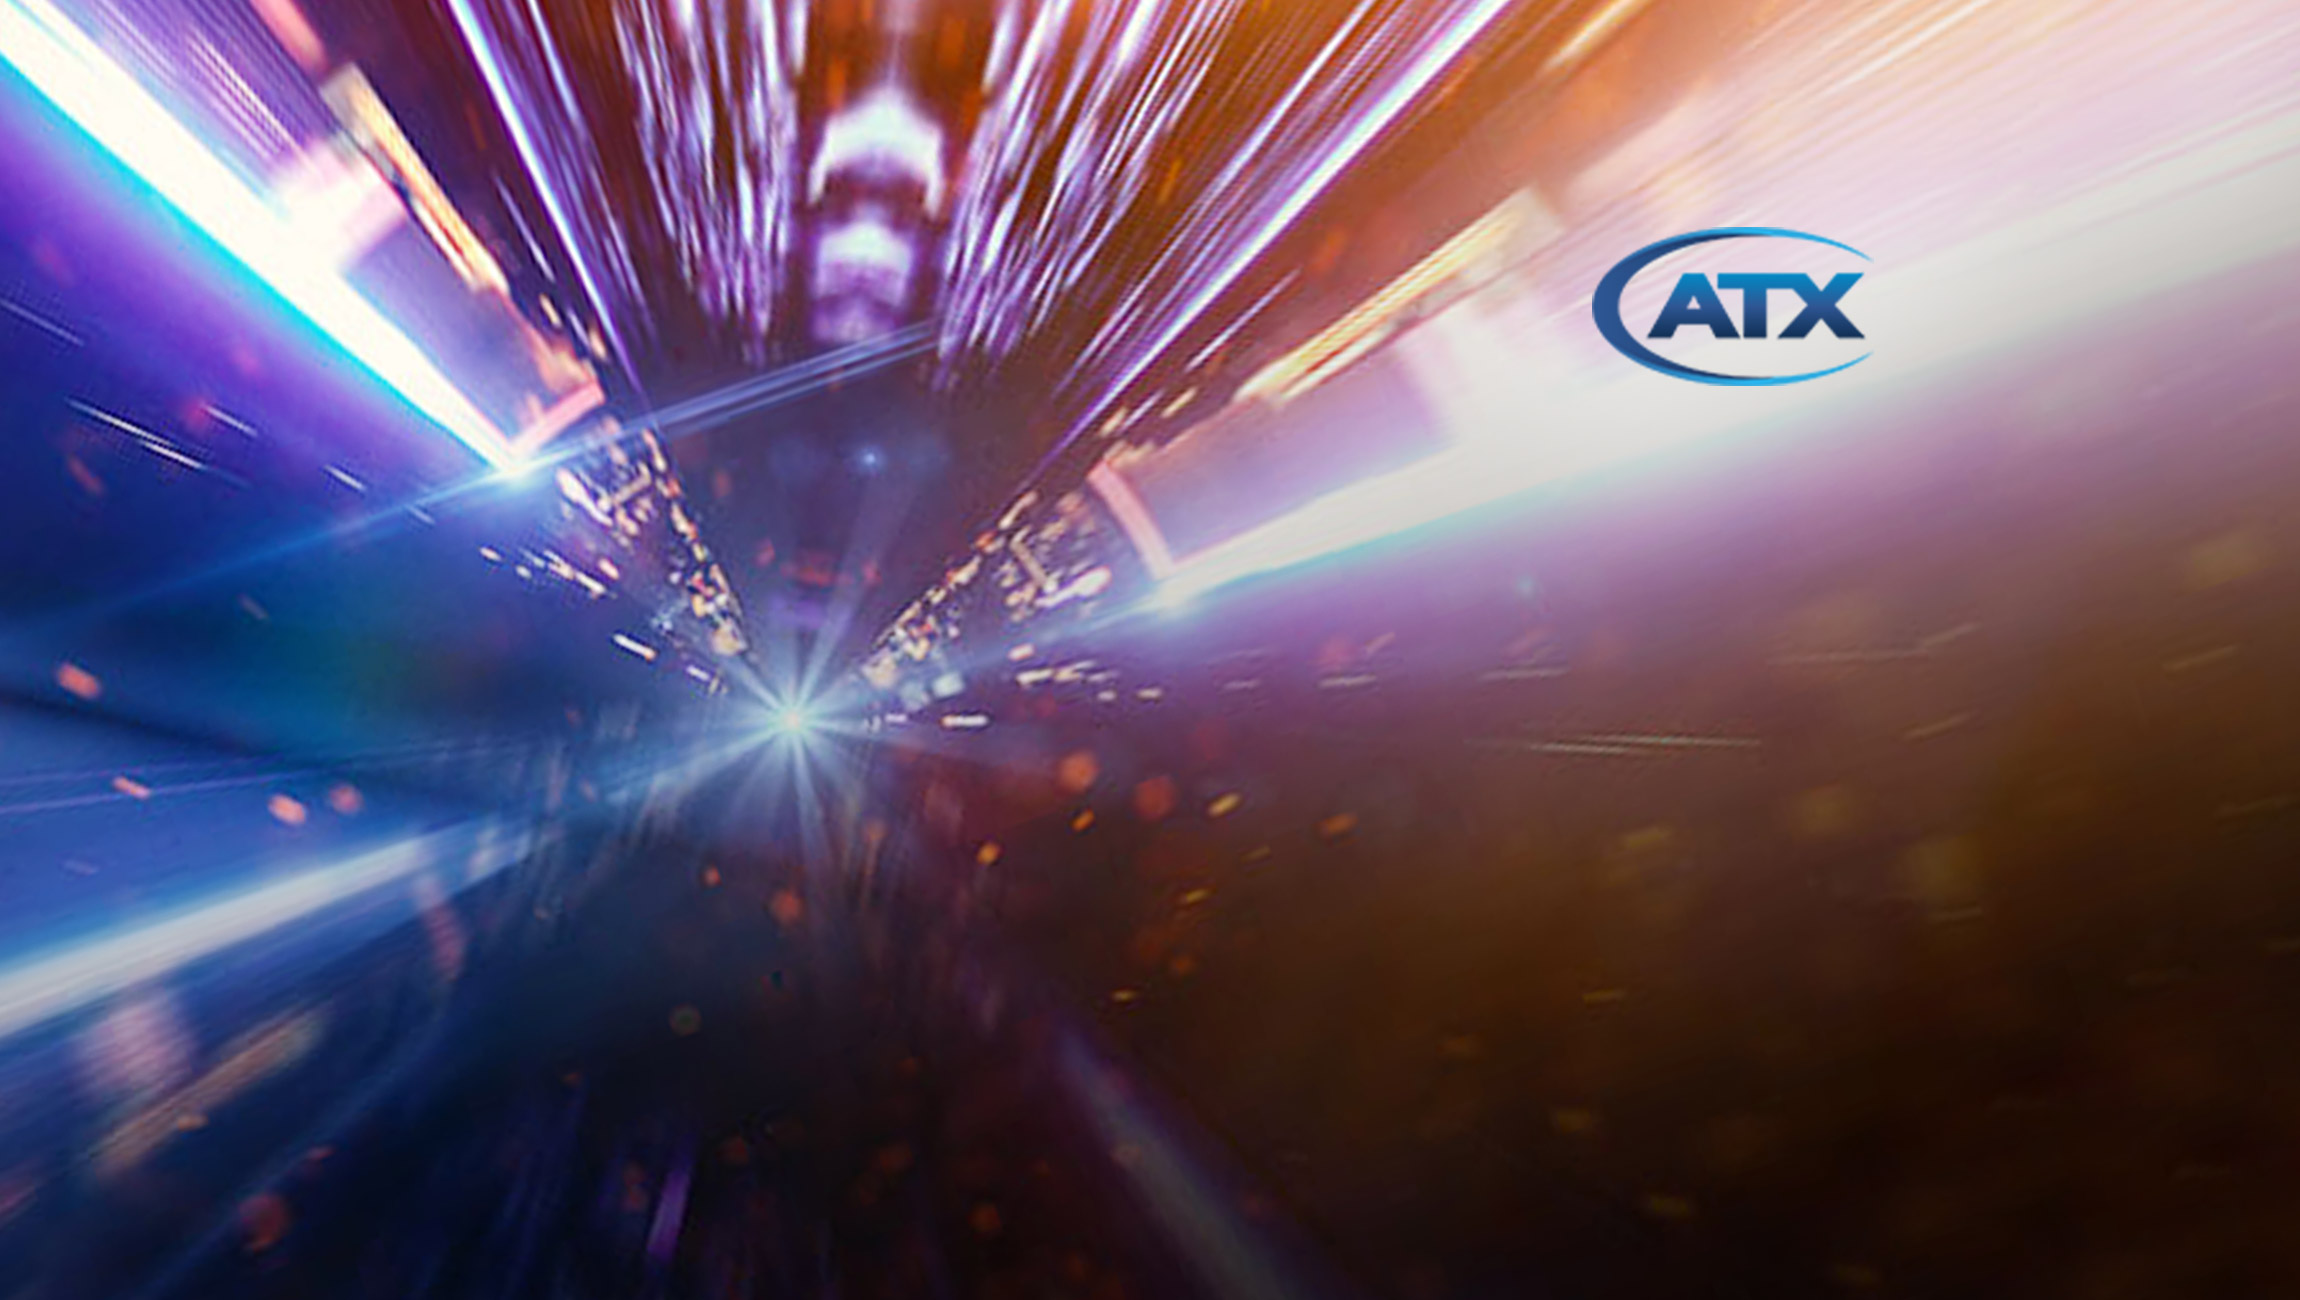 ATX Adds OTT Video Streaming Capabilities to Media Distribution Solution